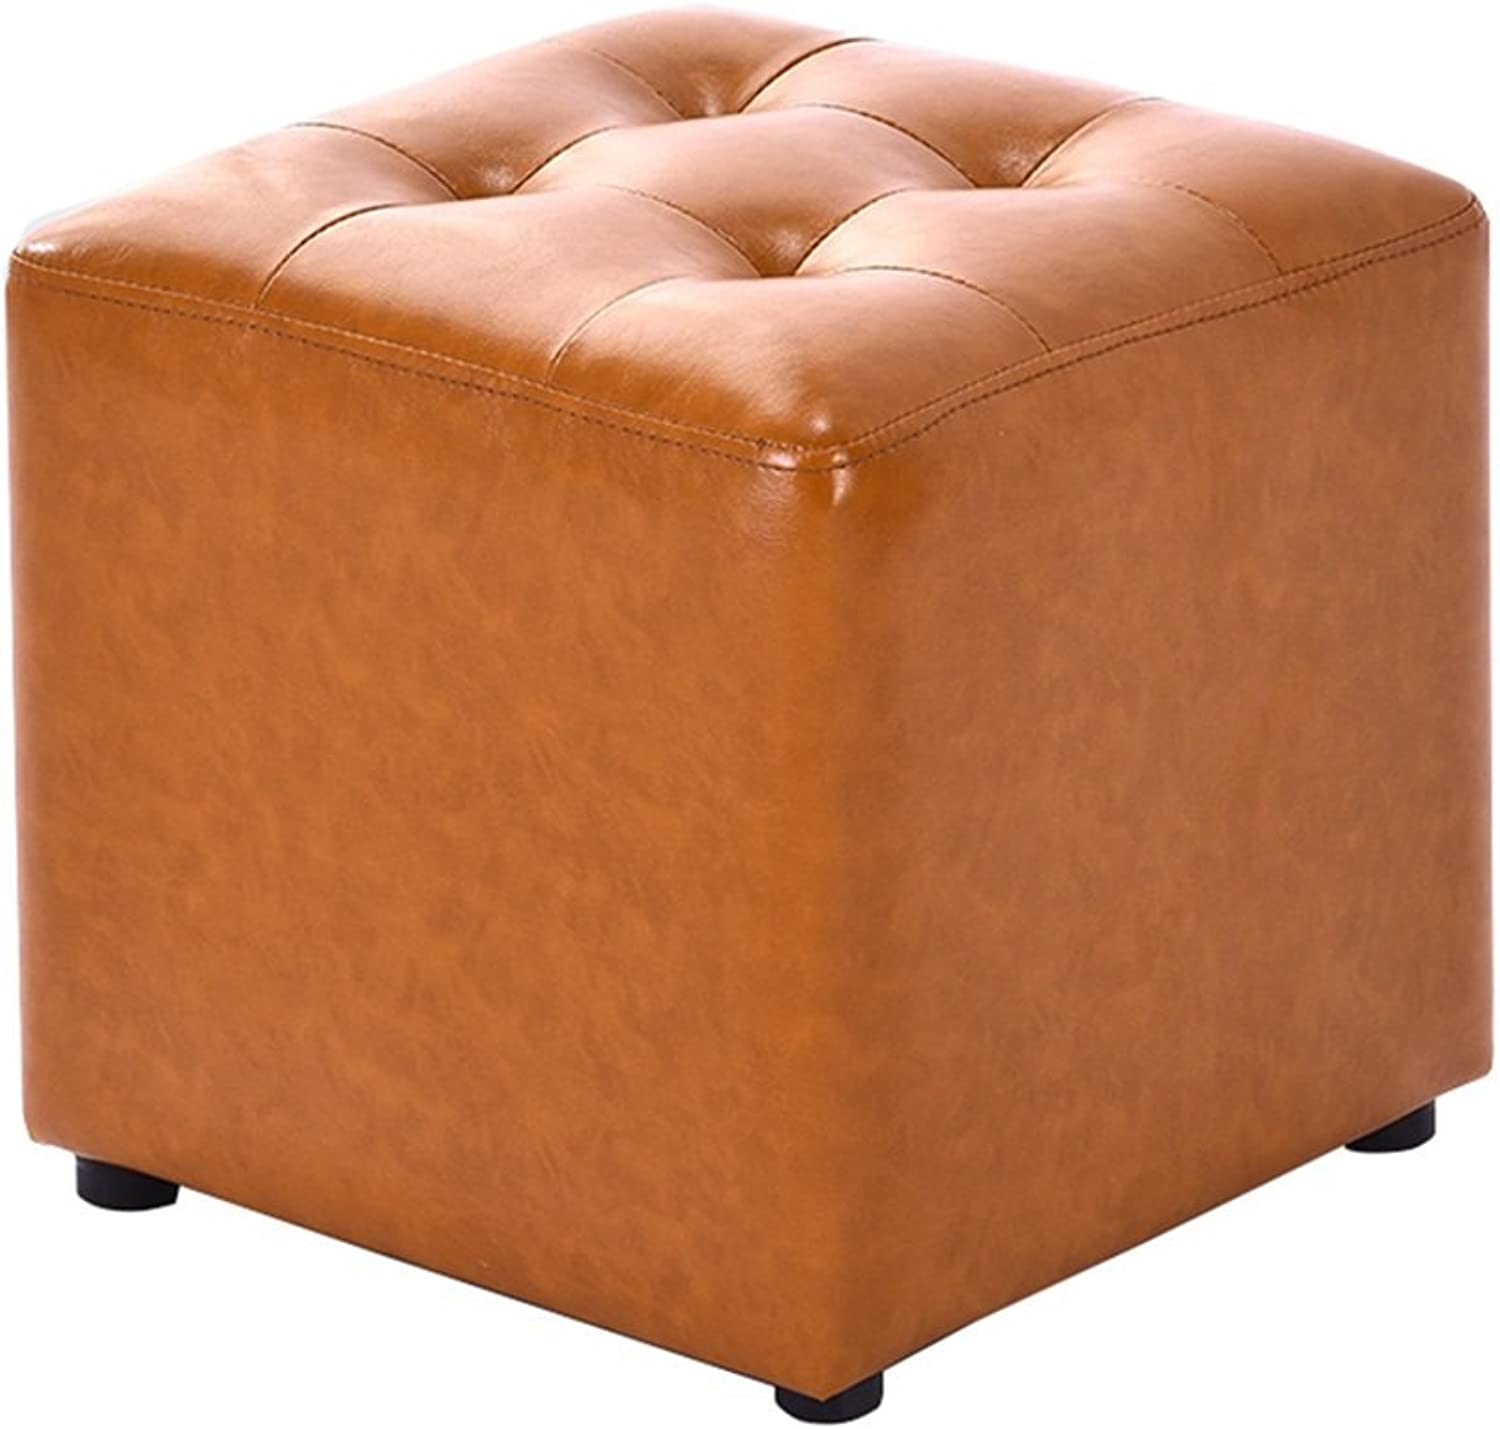 Footstool PU Leather seat with Wooden Square Cushion seat shoes Bench Yellow can be Used for Corridor Living Makeup